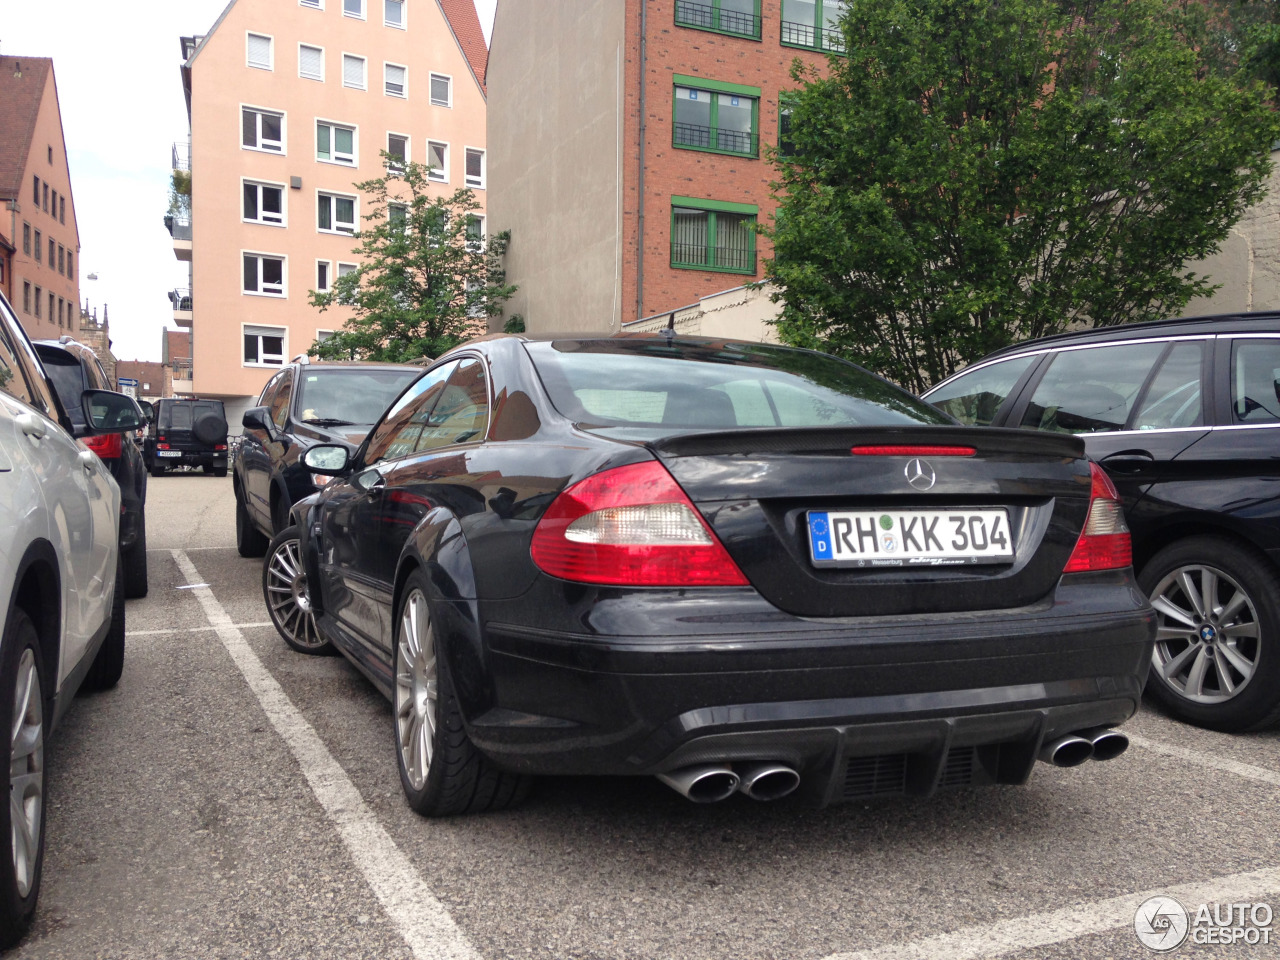 Mercedes benz clk 63 amg black series 3 january 2017 for Mercedes benz clk63 amg black series